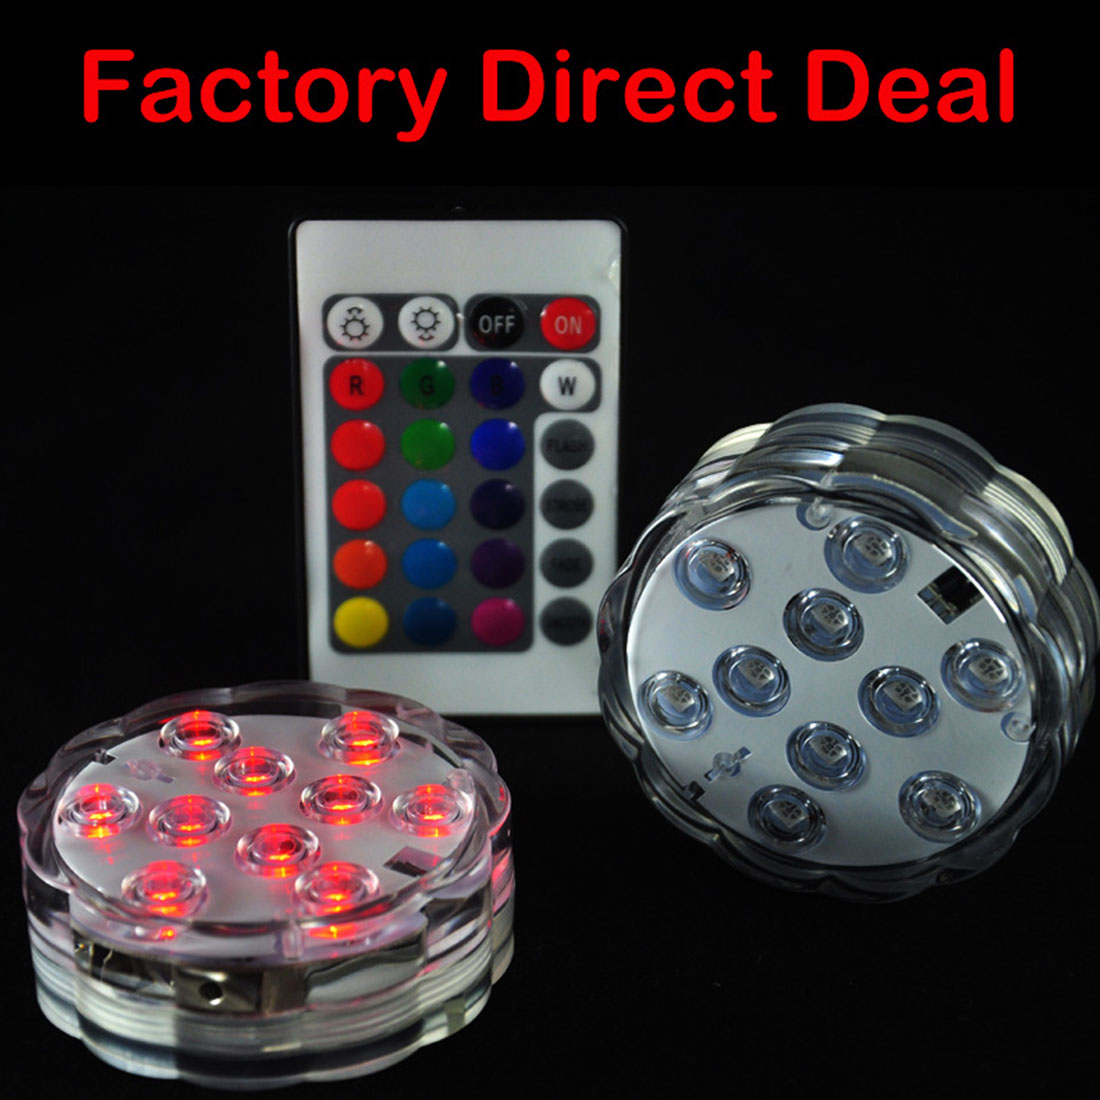 10 LED RGB Submersible Lamp With Remote Multi Color IP68 Waterproof Swimming Pool Light for Aquarium Pond Wedding Party